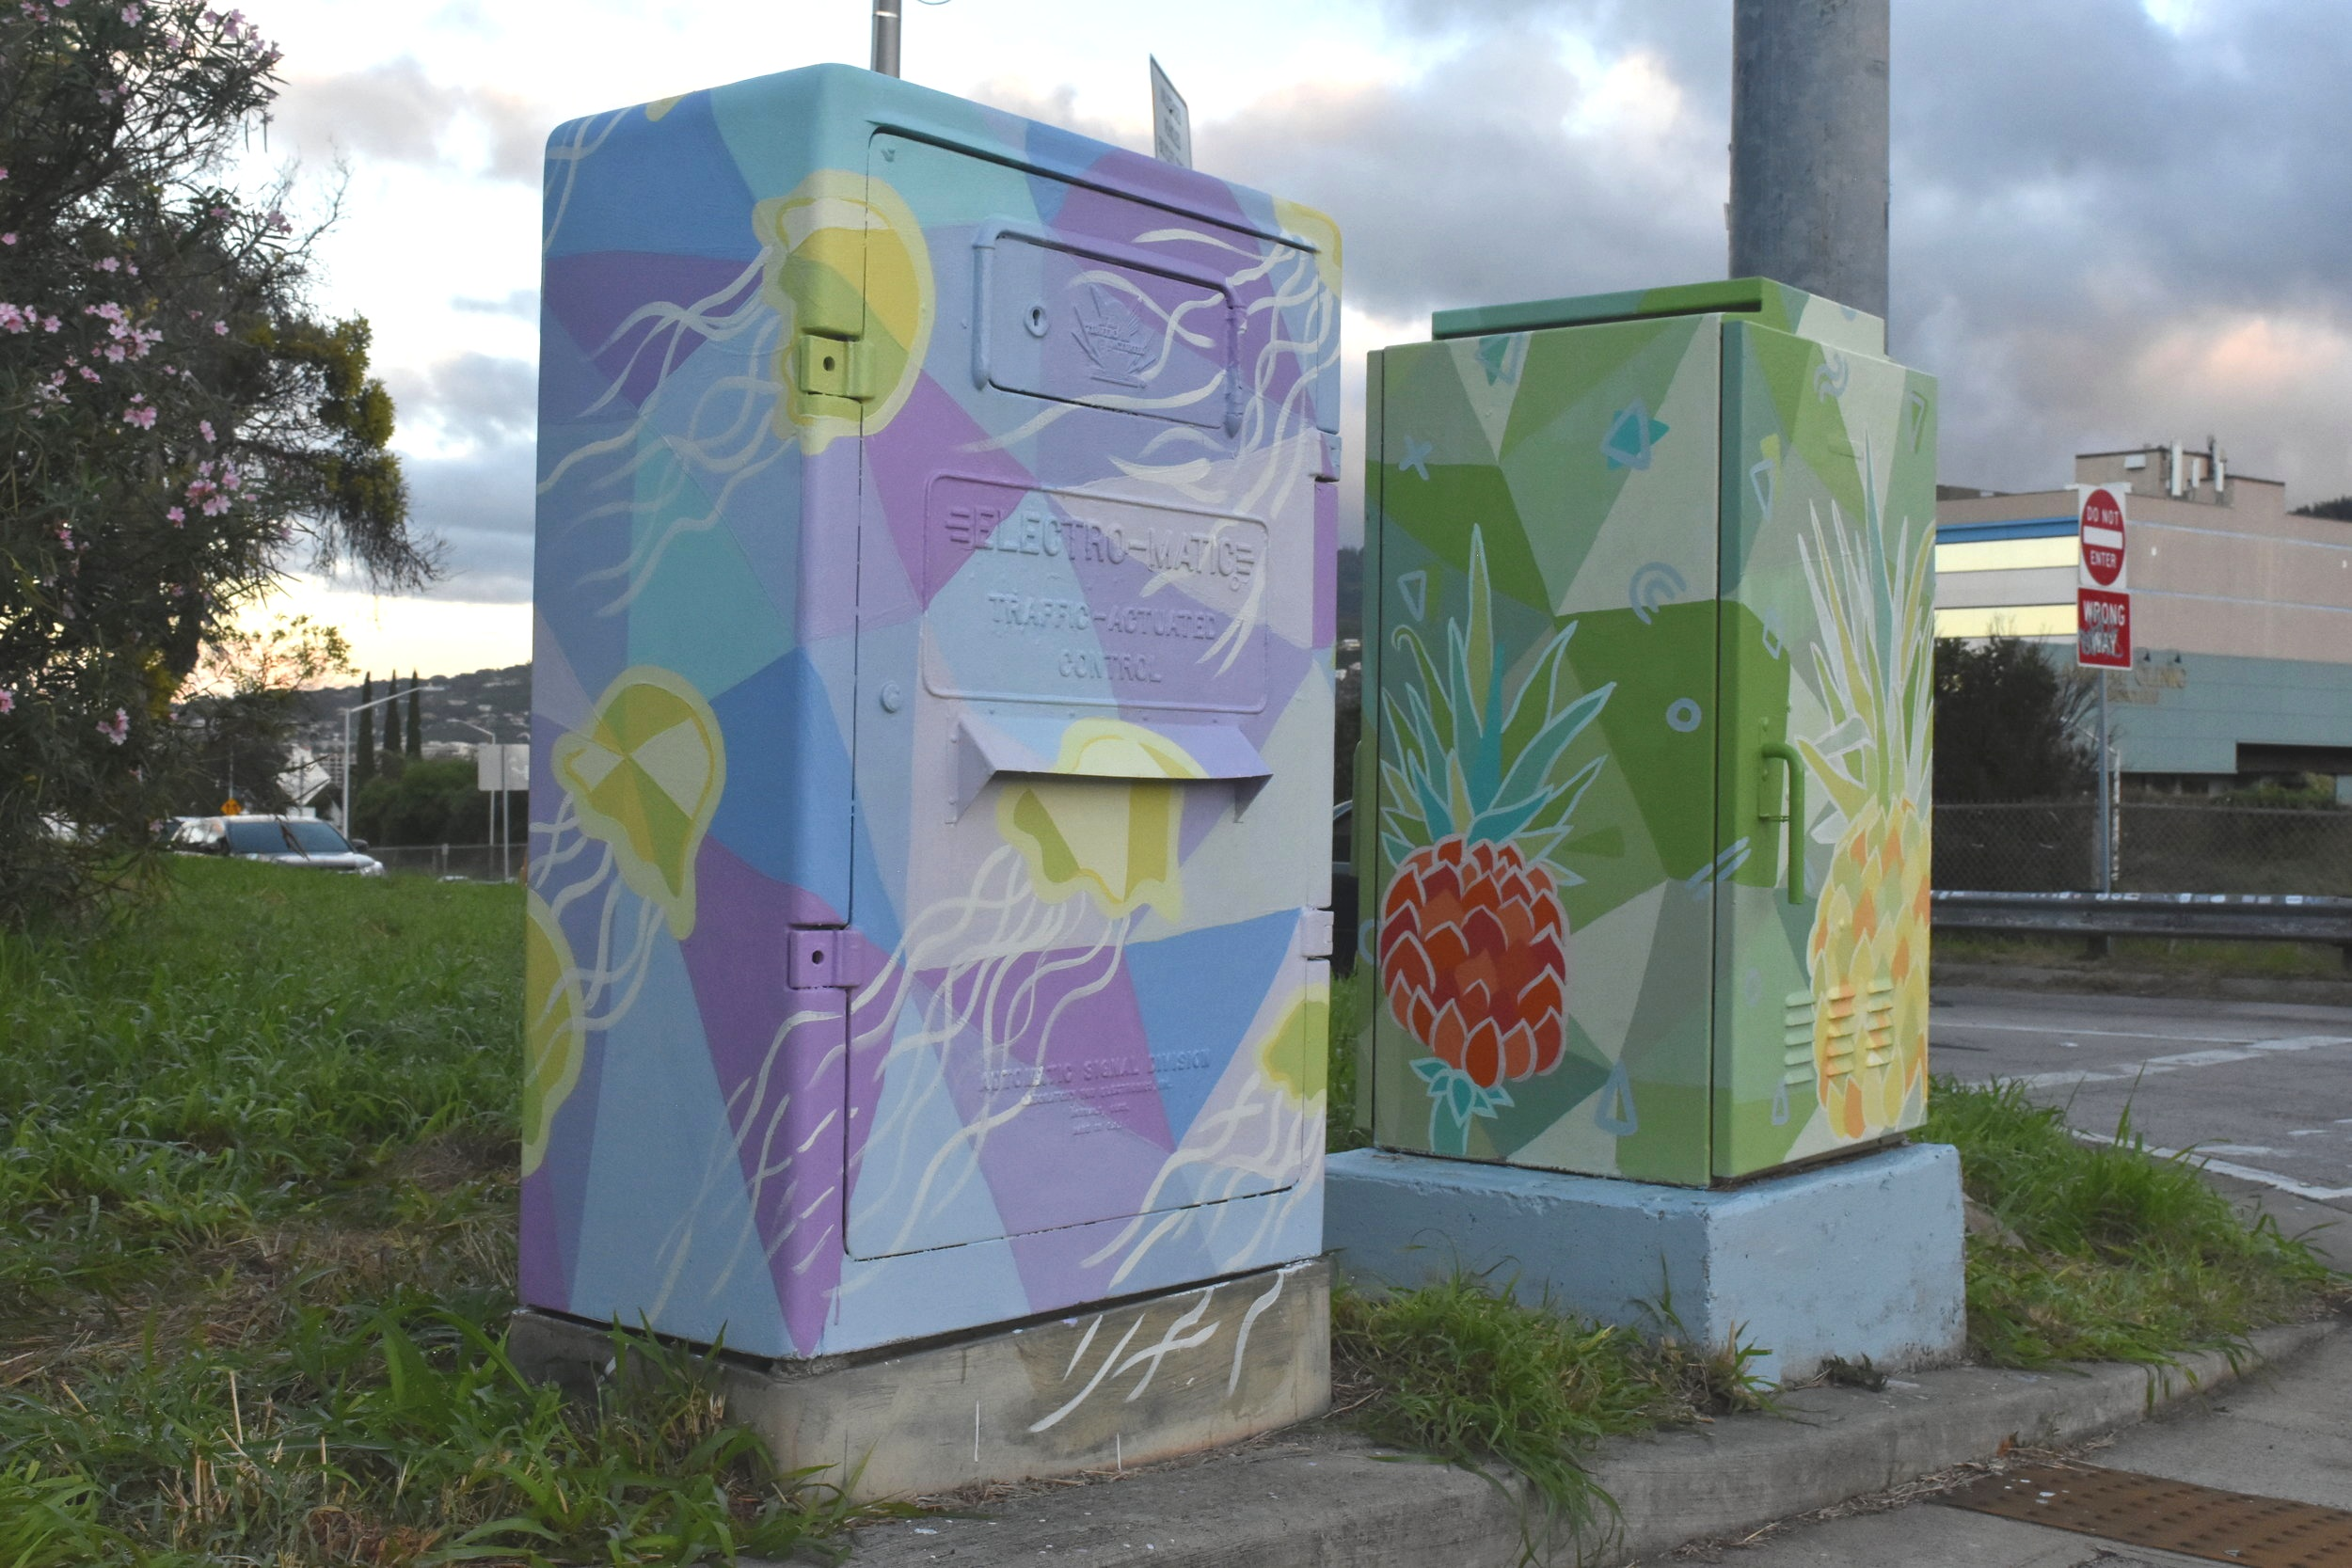 Powerboxes in Kaimuki, Nov 2018